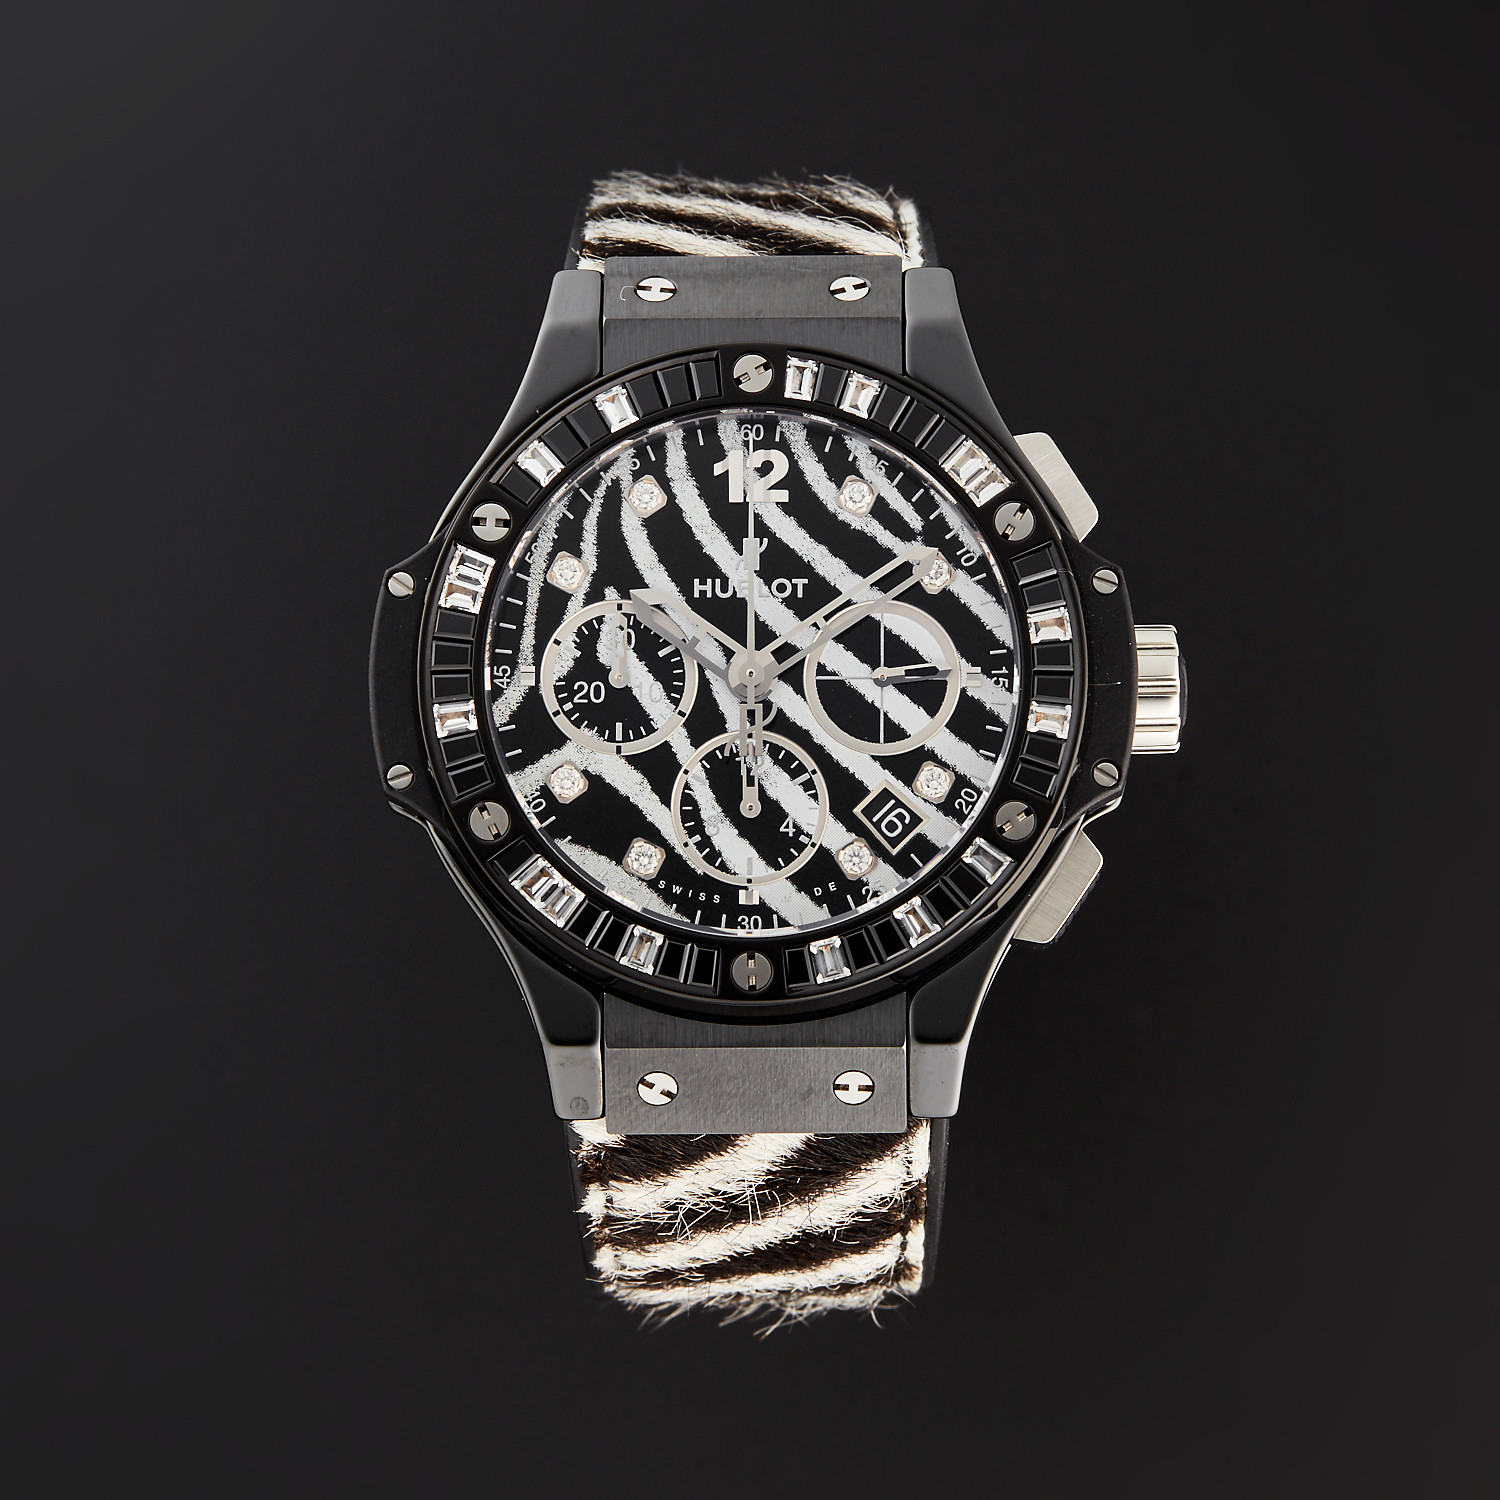 Hublot Ladies Big Bang Zebra Chronograph Automatic // 341.CV.7517.VR.1975  // Store Display - Exquisite Timepieces - Touch of Modern